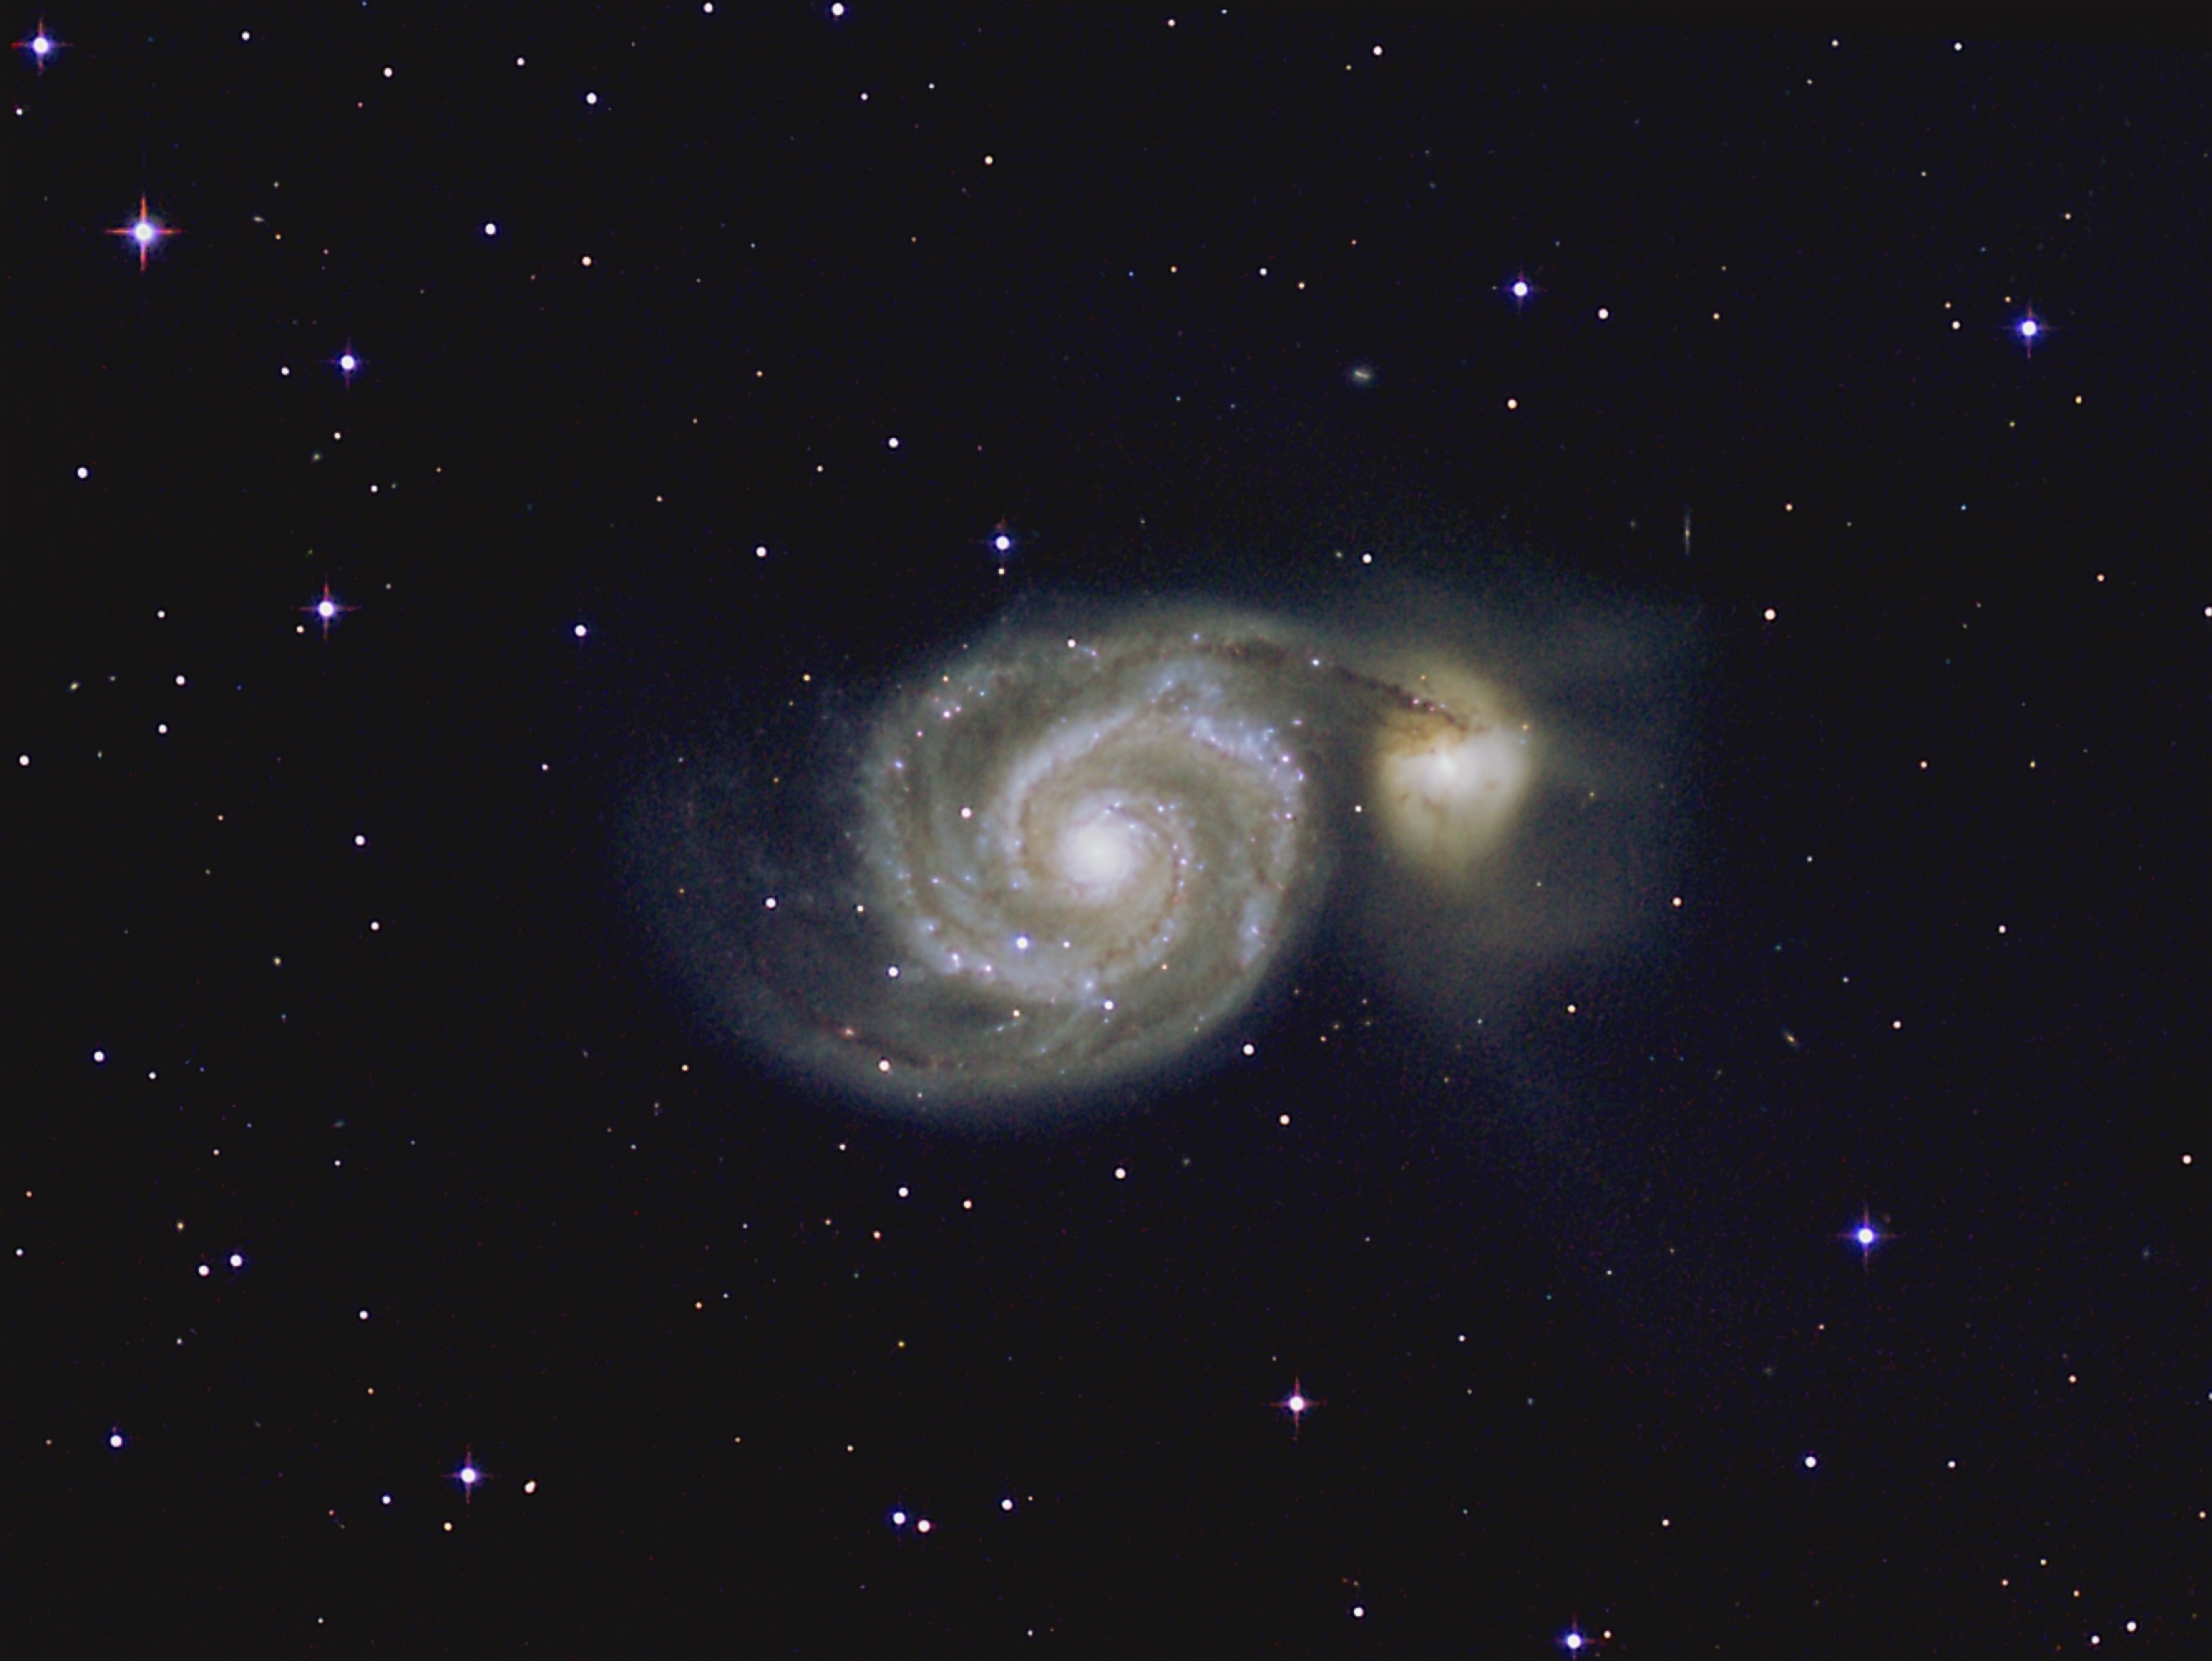 Whirlpool galaxy center